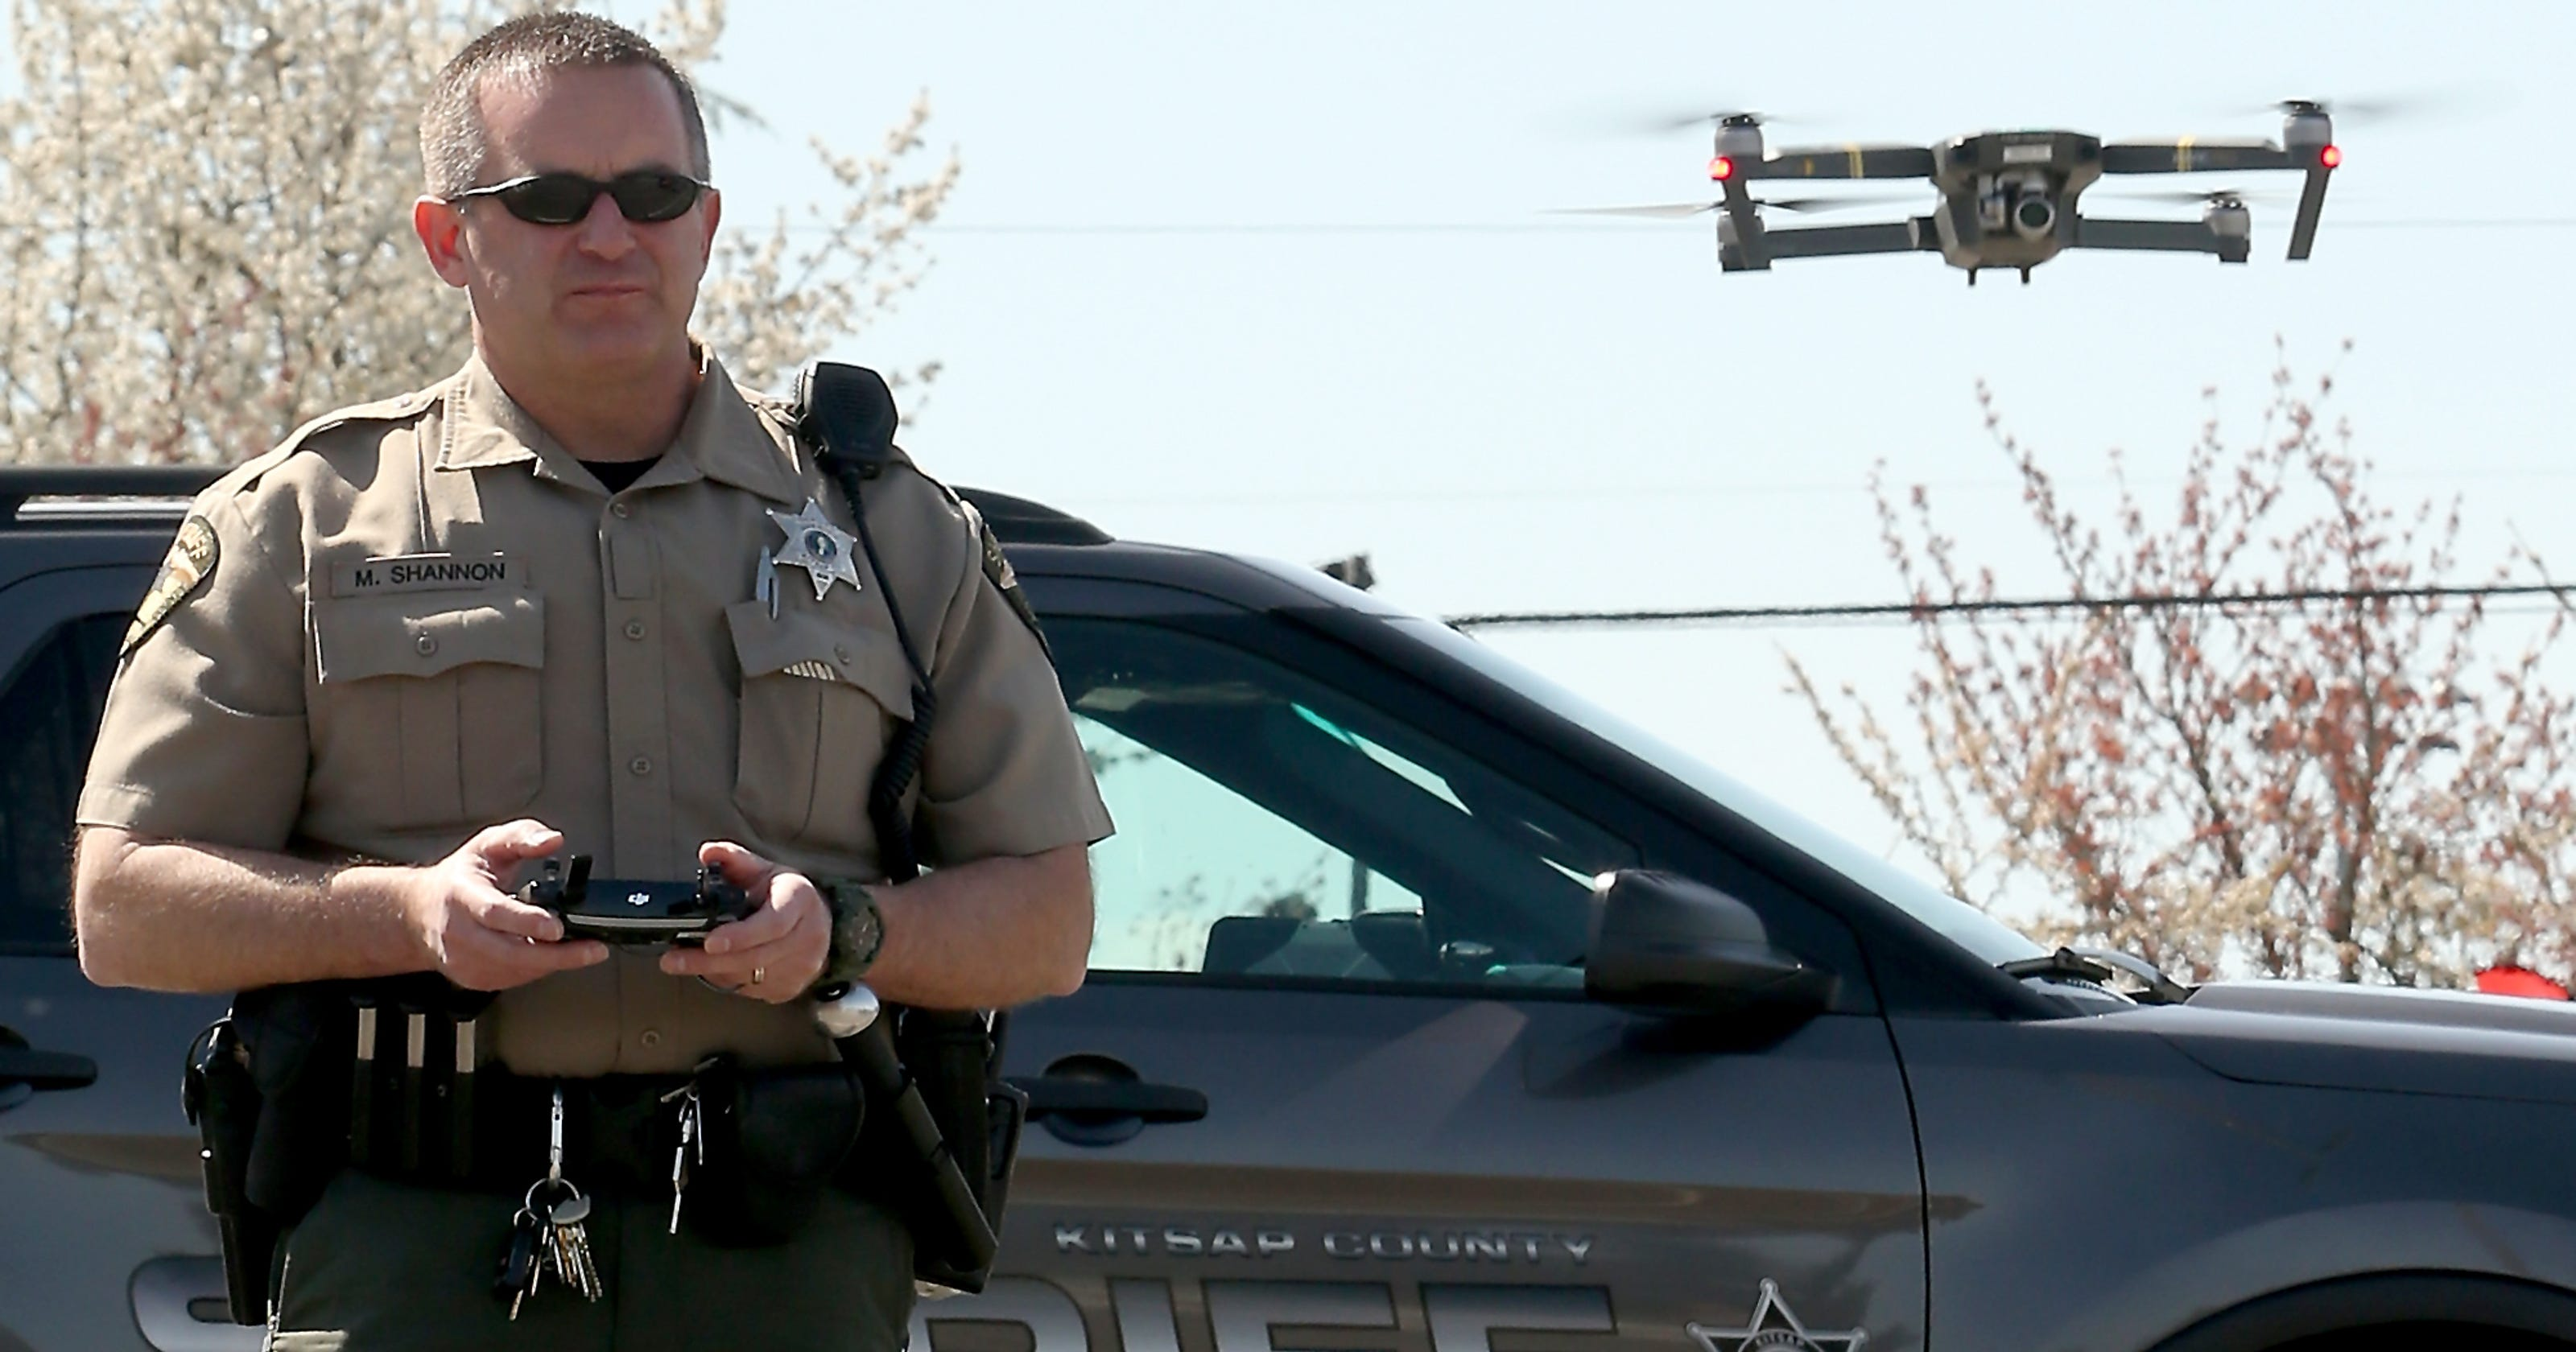 Kitsap County Sheriff's Office deploys drones